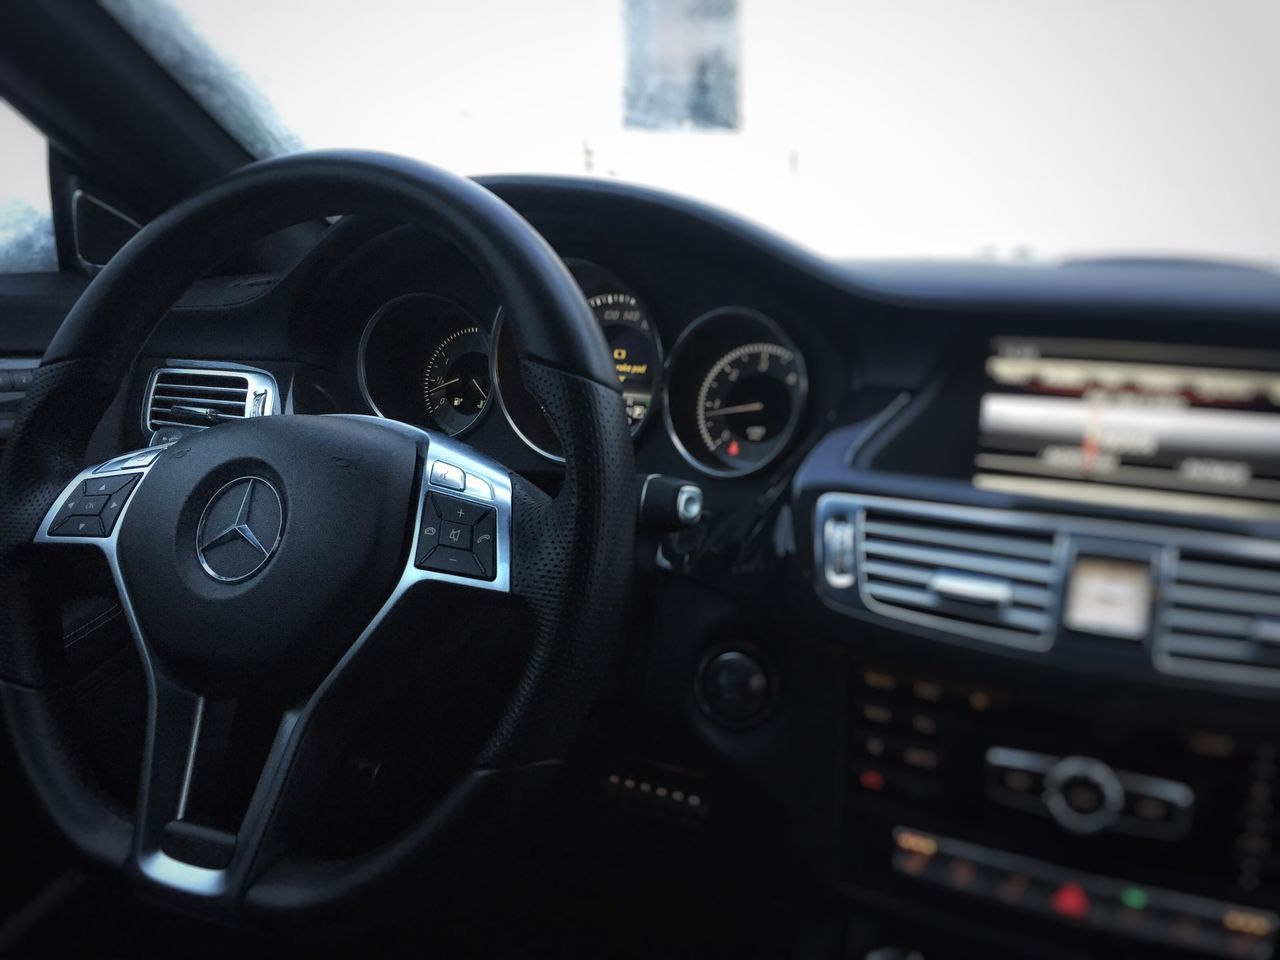 dashboard, car interior, car, steering wheel, black color, no people, technology, speedometer, close-up, gauge, indoors, day